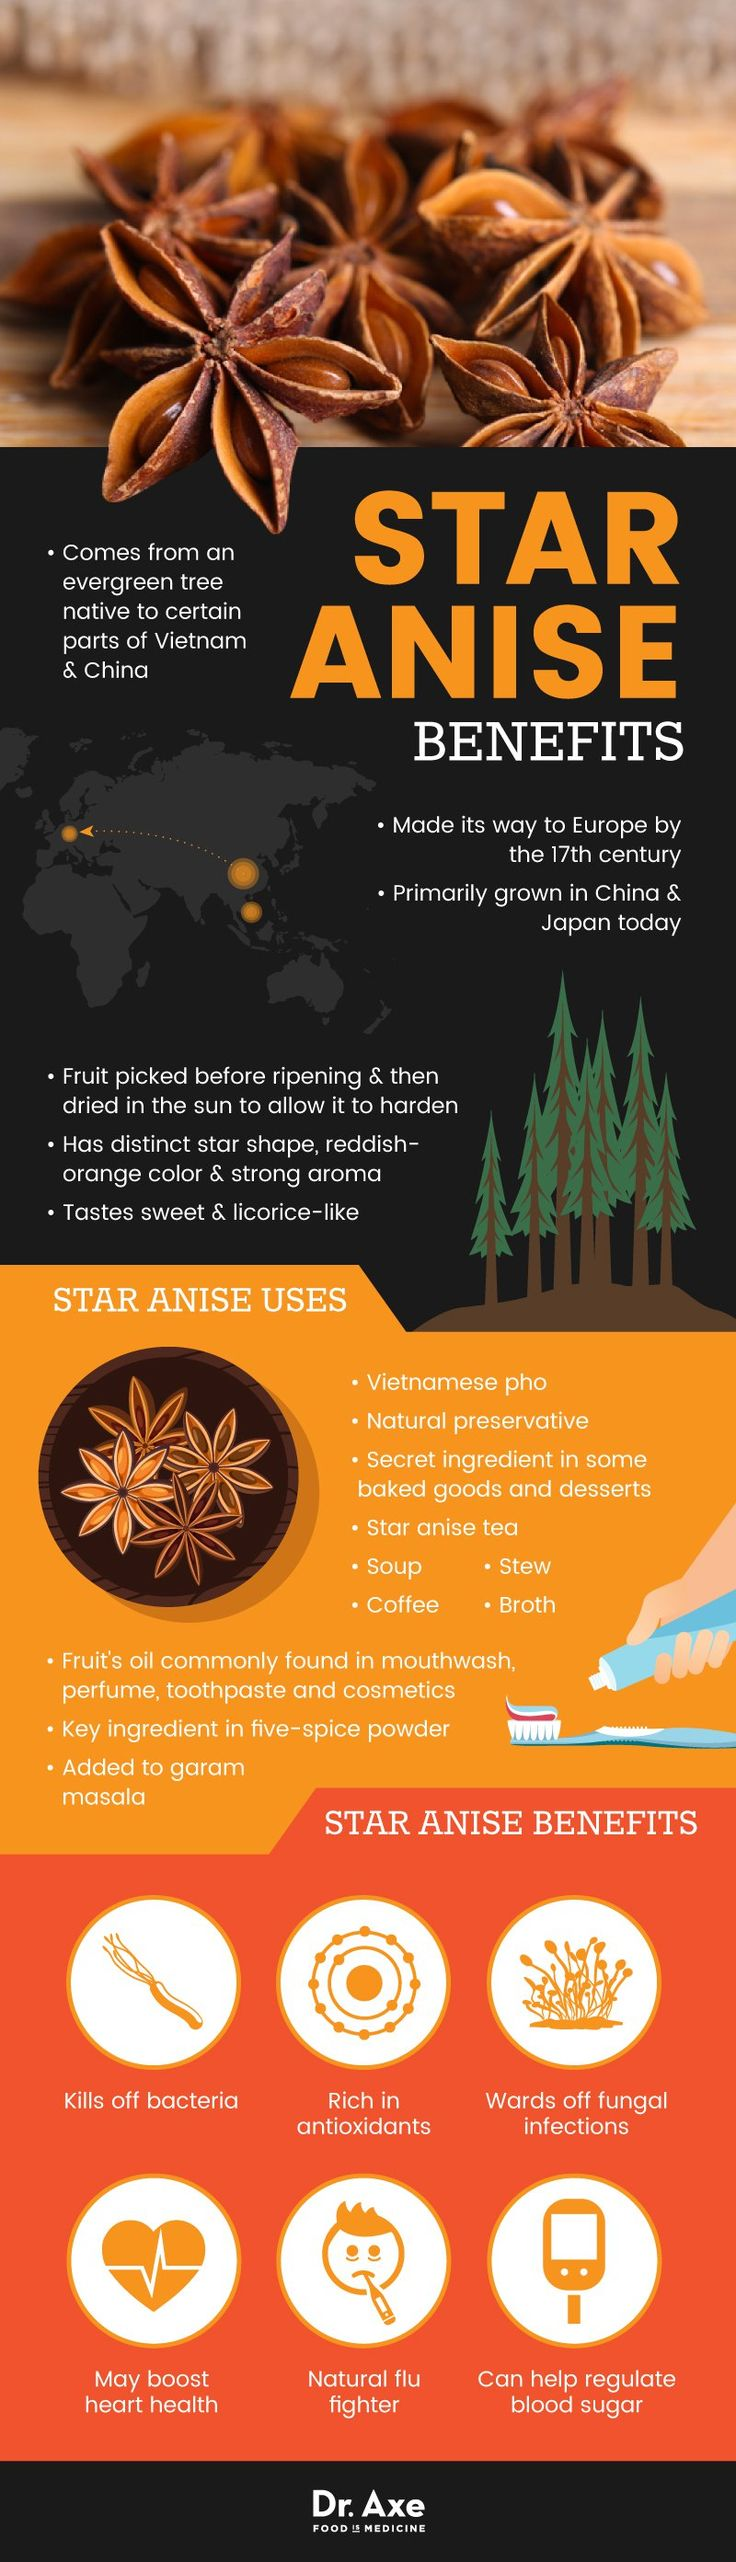 Star anise benefits - Dr. Axe